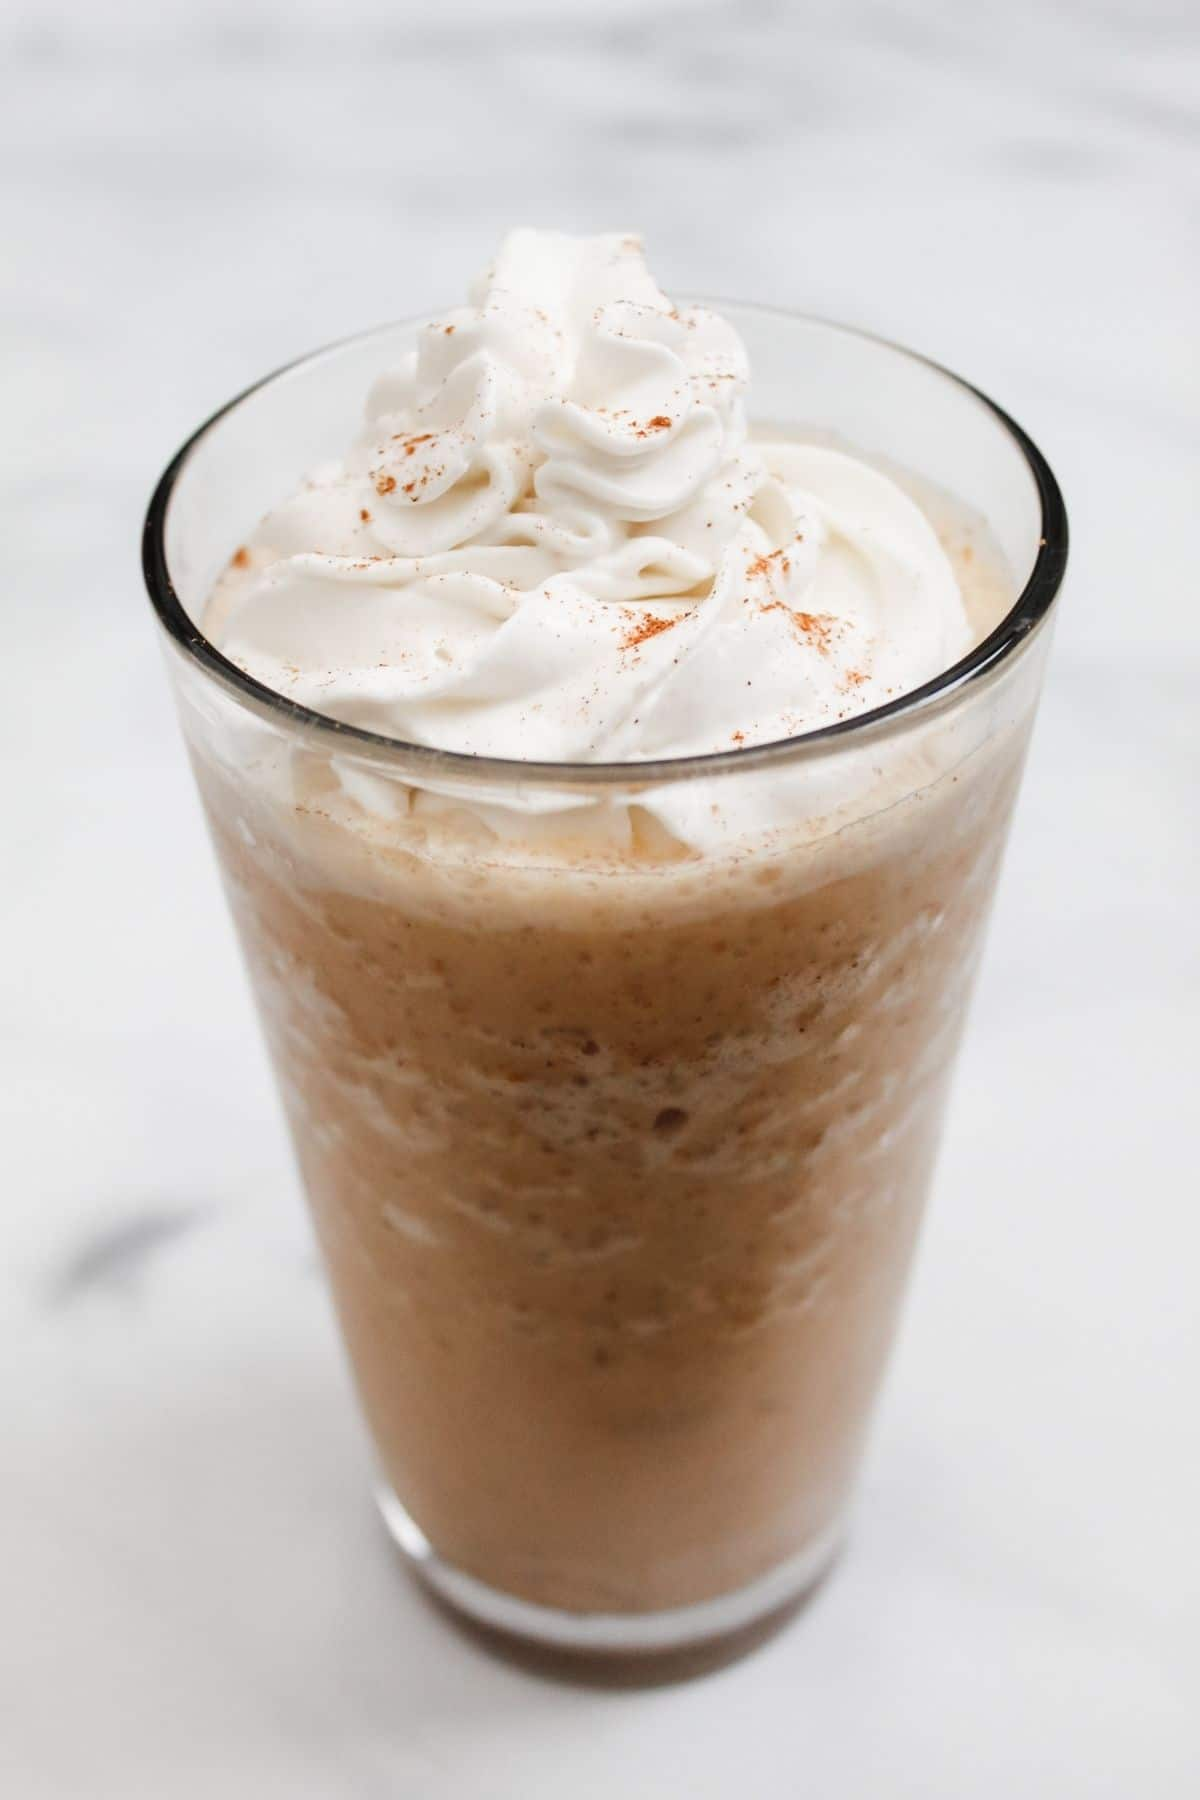 vegan pumpkin spice cream frappuccino with dairy free whipped cream in a glass with a white background